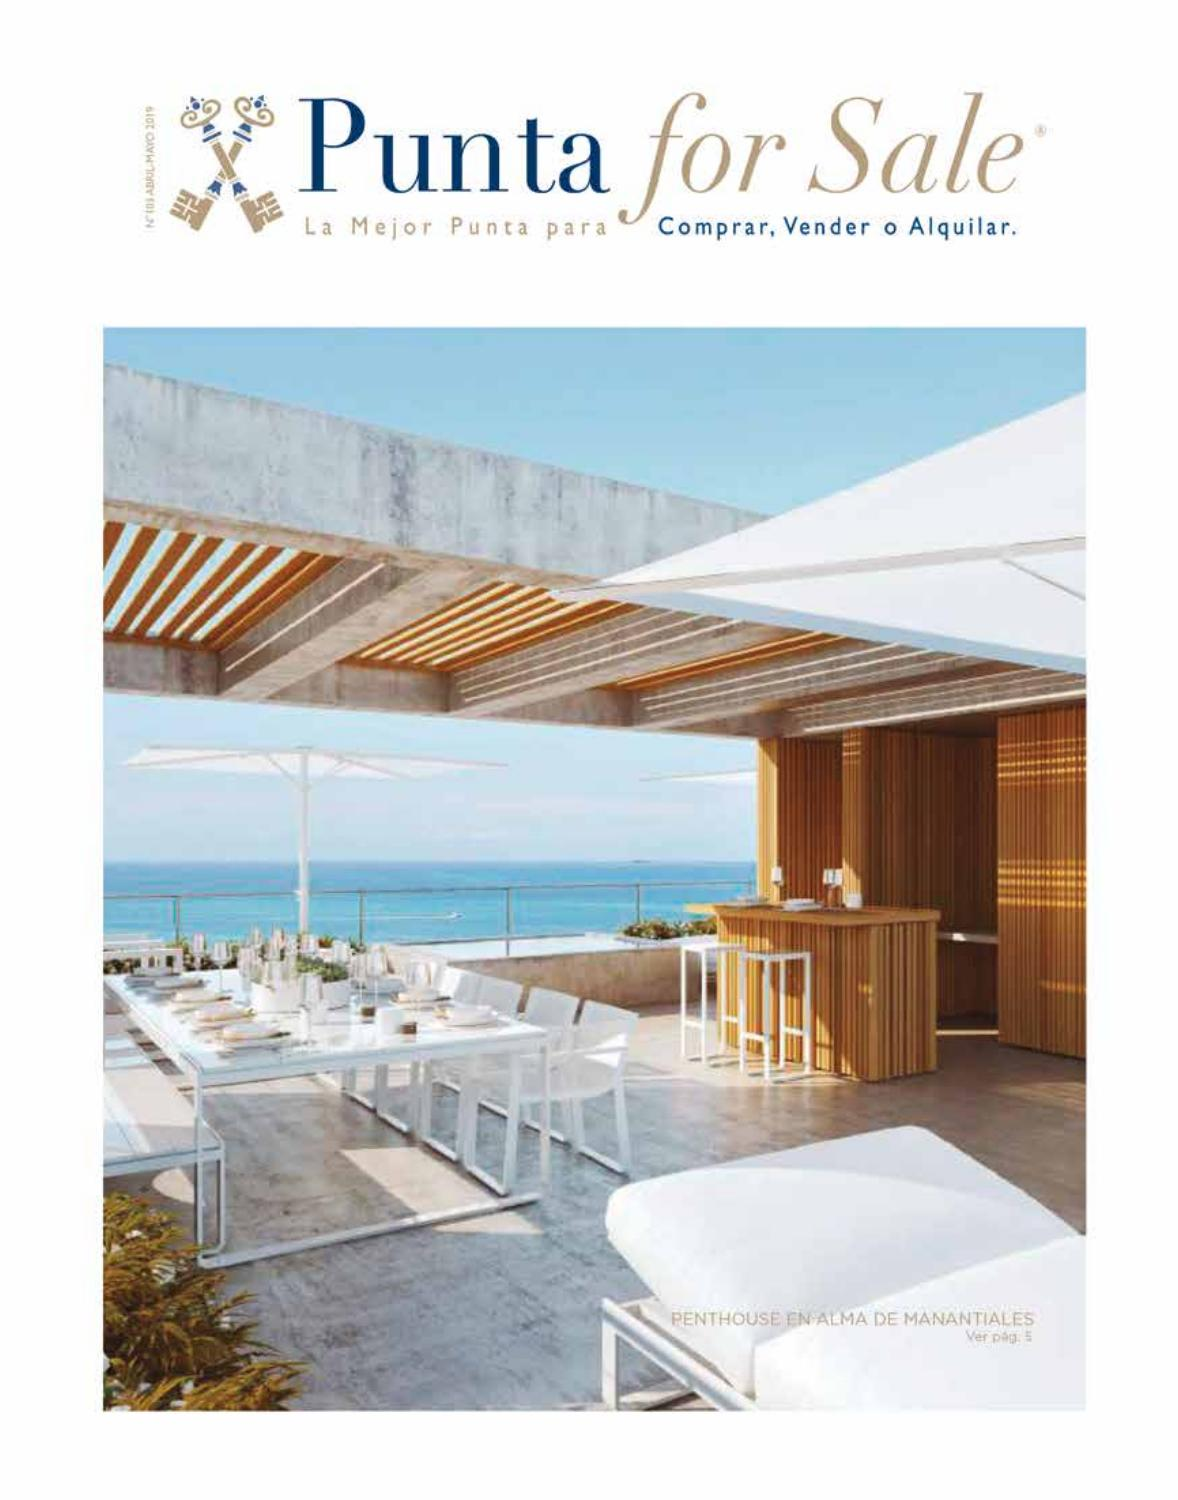 Revista de Real Estate Punta For Sale, edición # 103 Abril - Mayo 2019